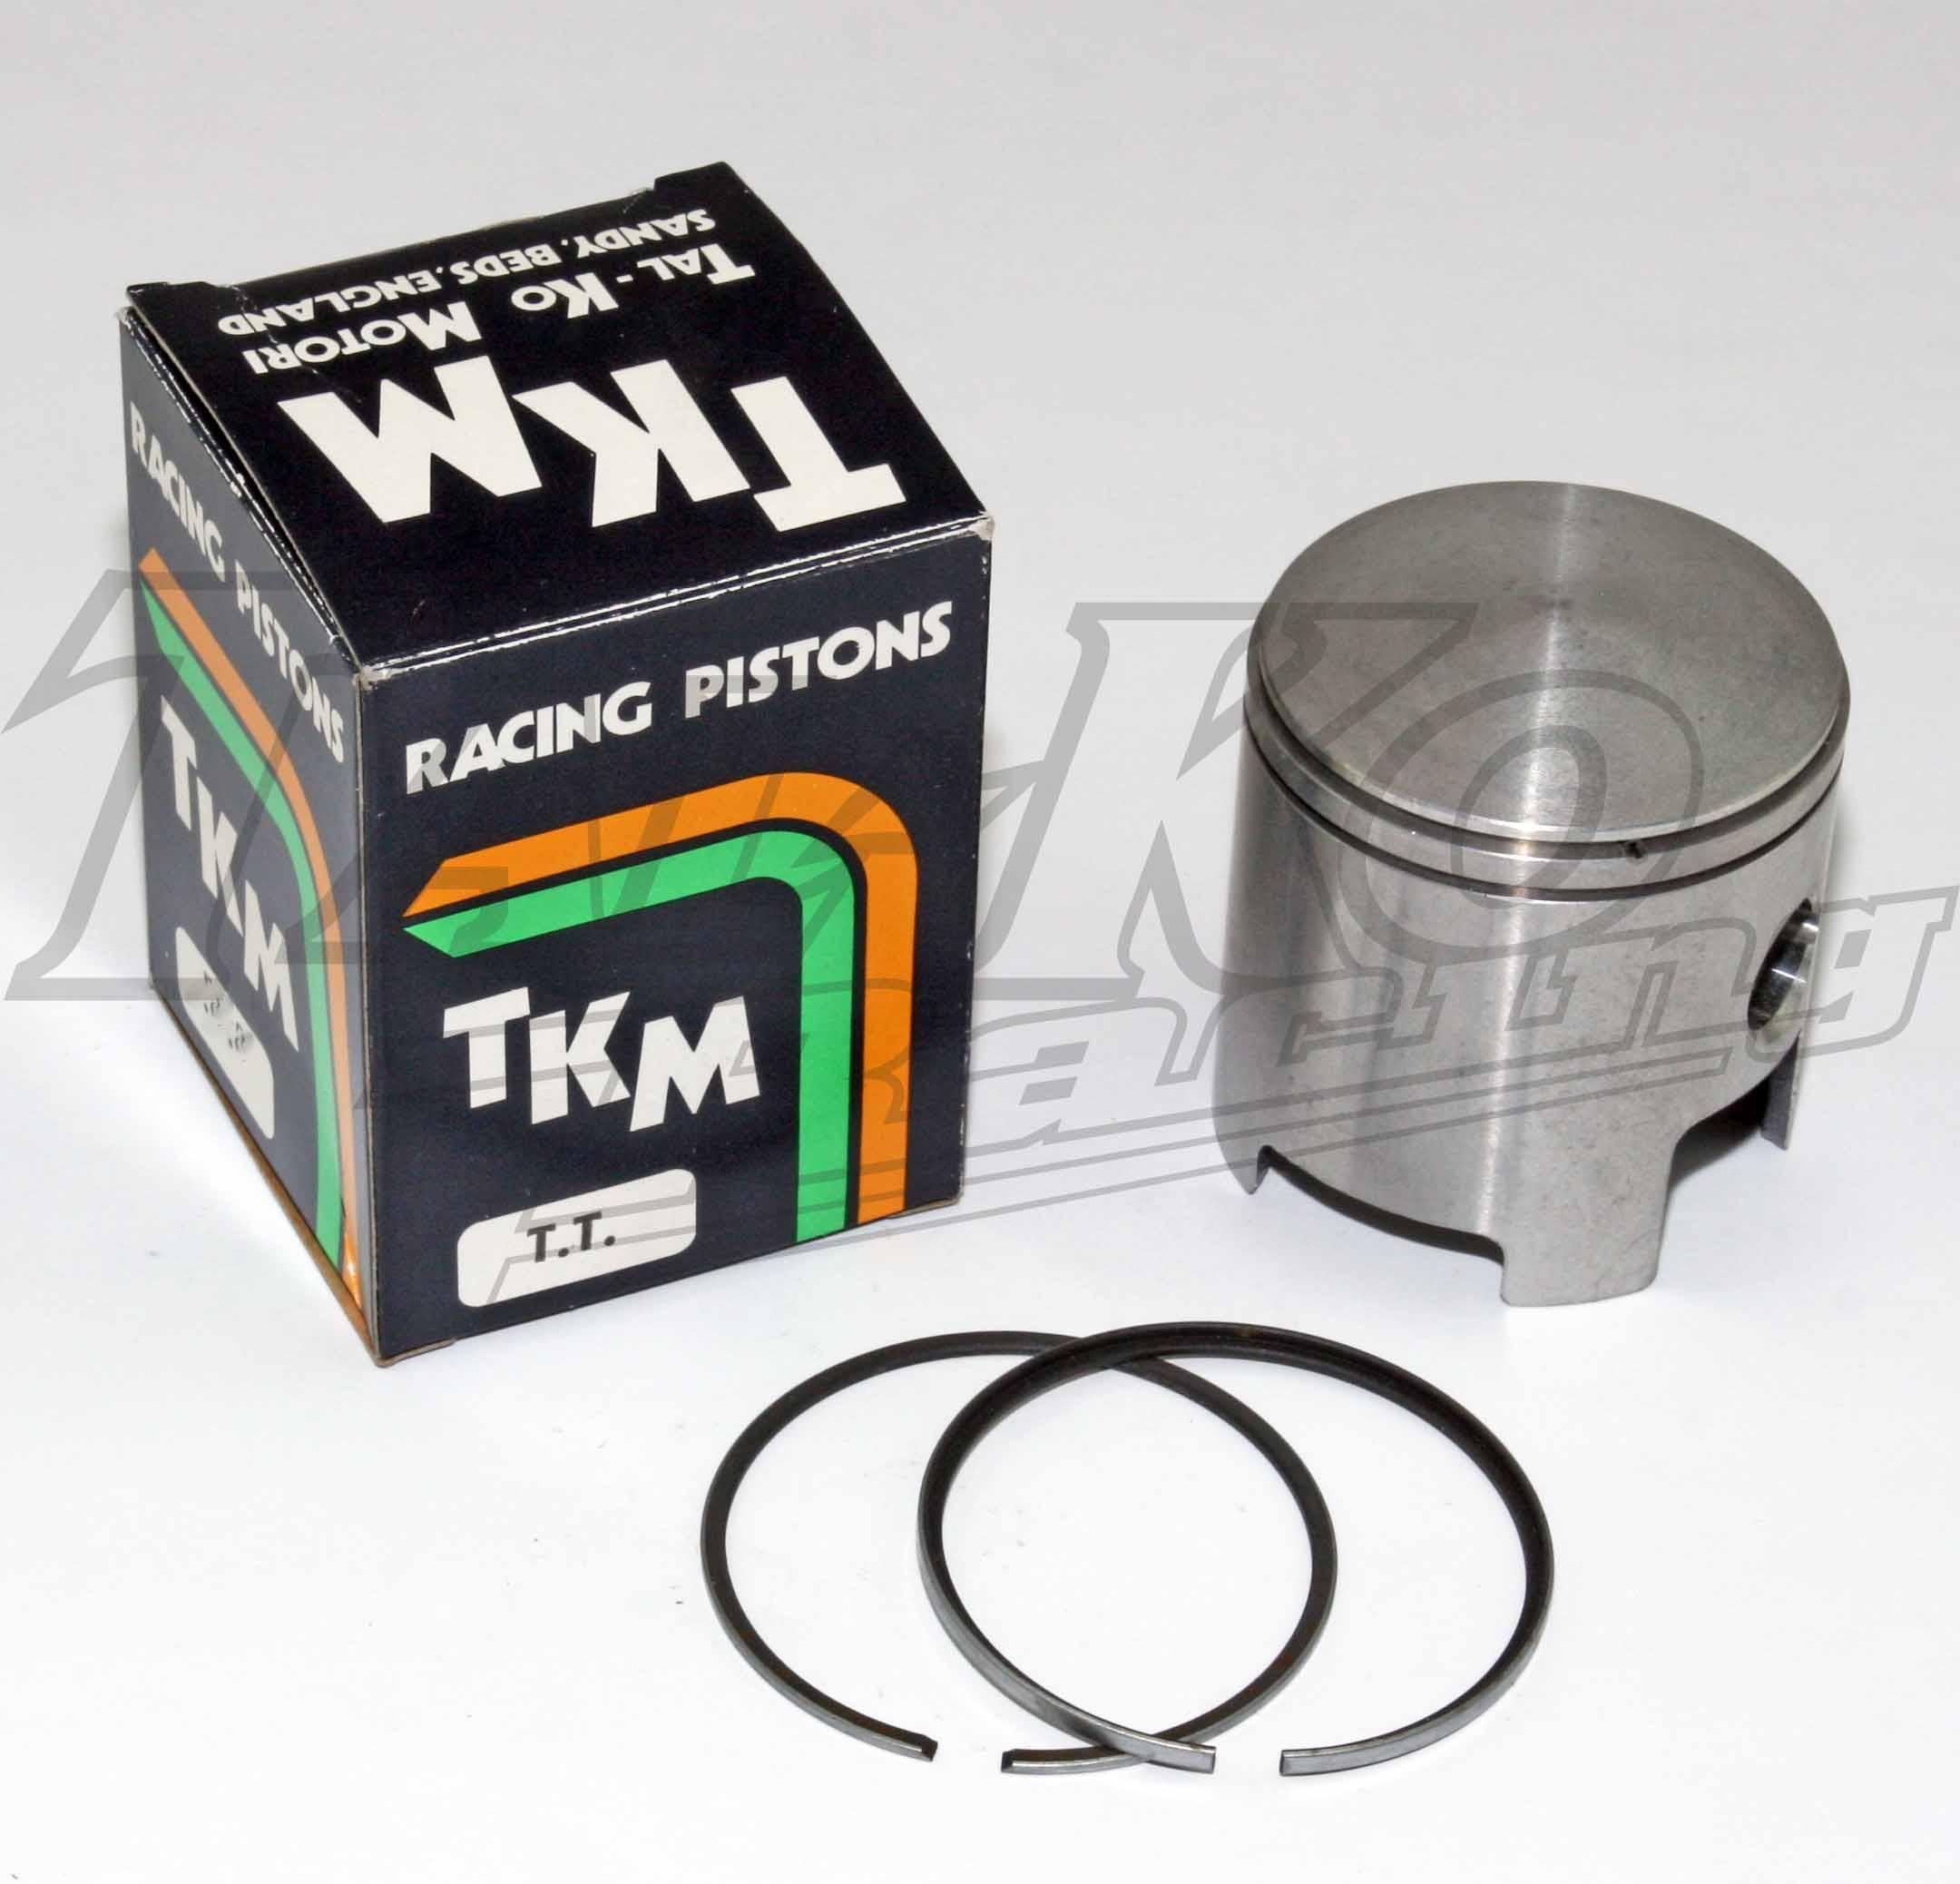 TKM TT PISTON + TWIN RING SET 54.94mm